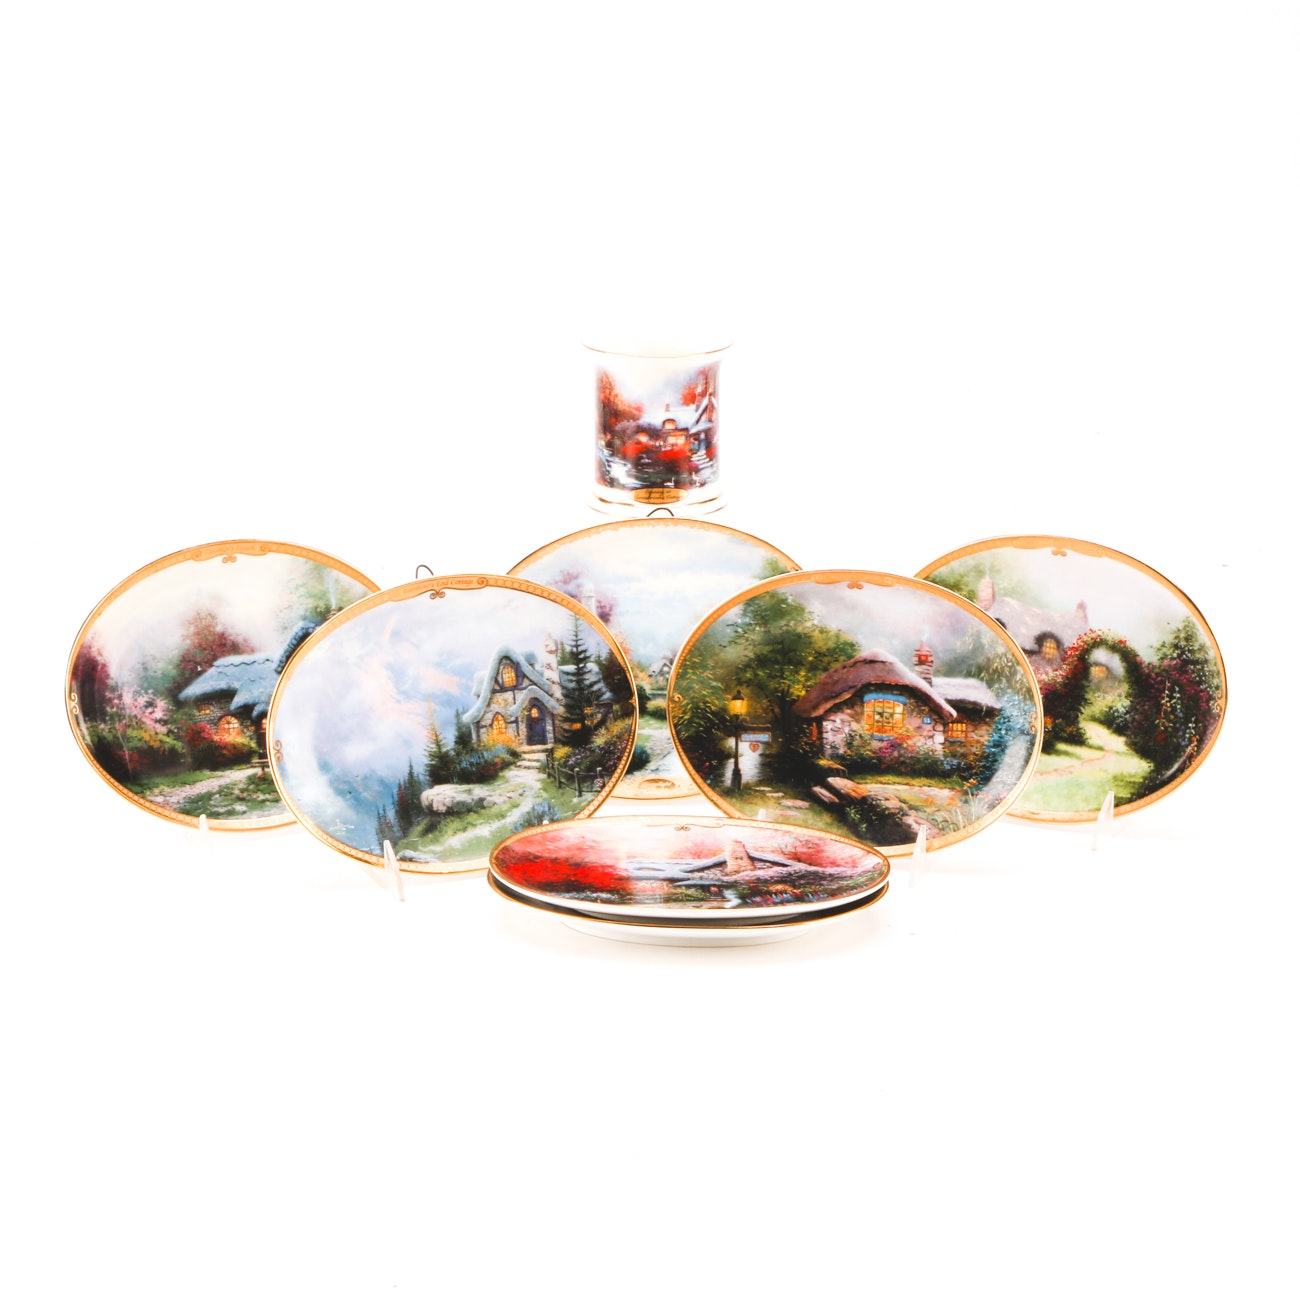 Thomas Kinkade Collectible Plates